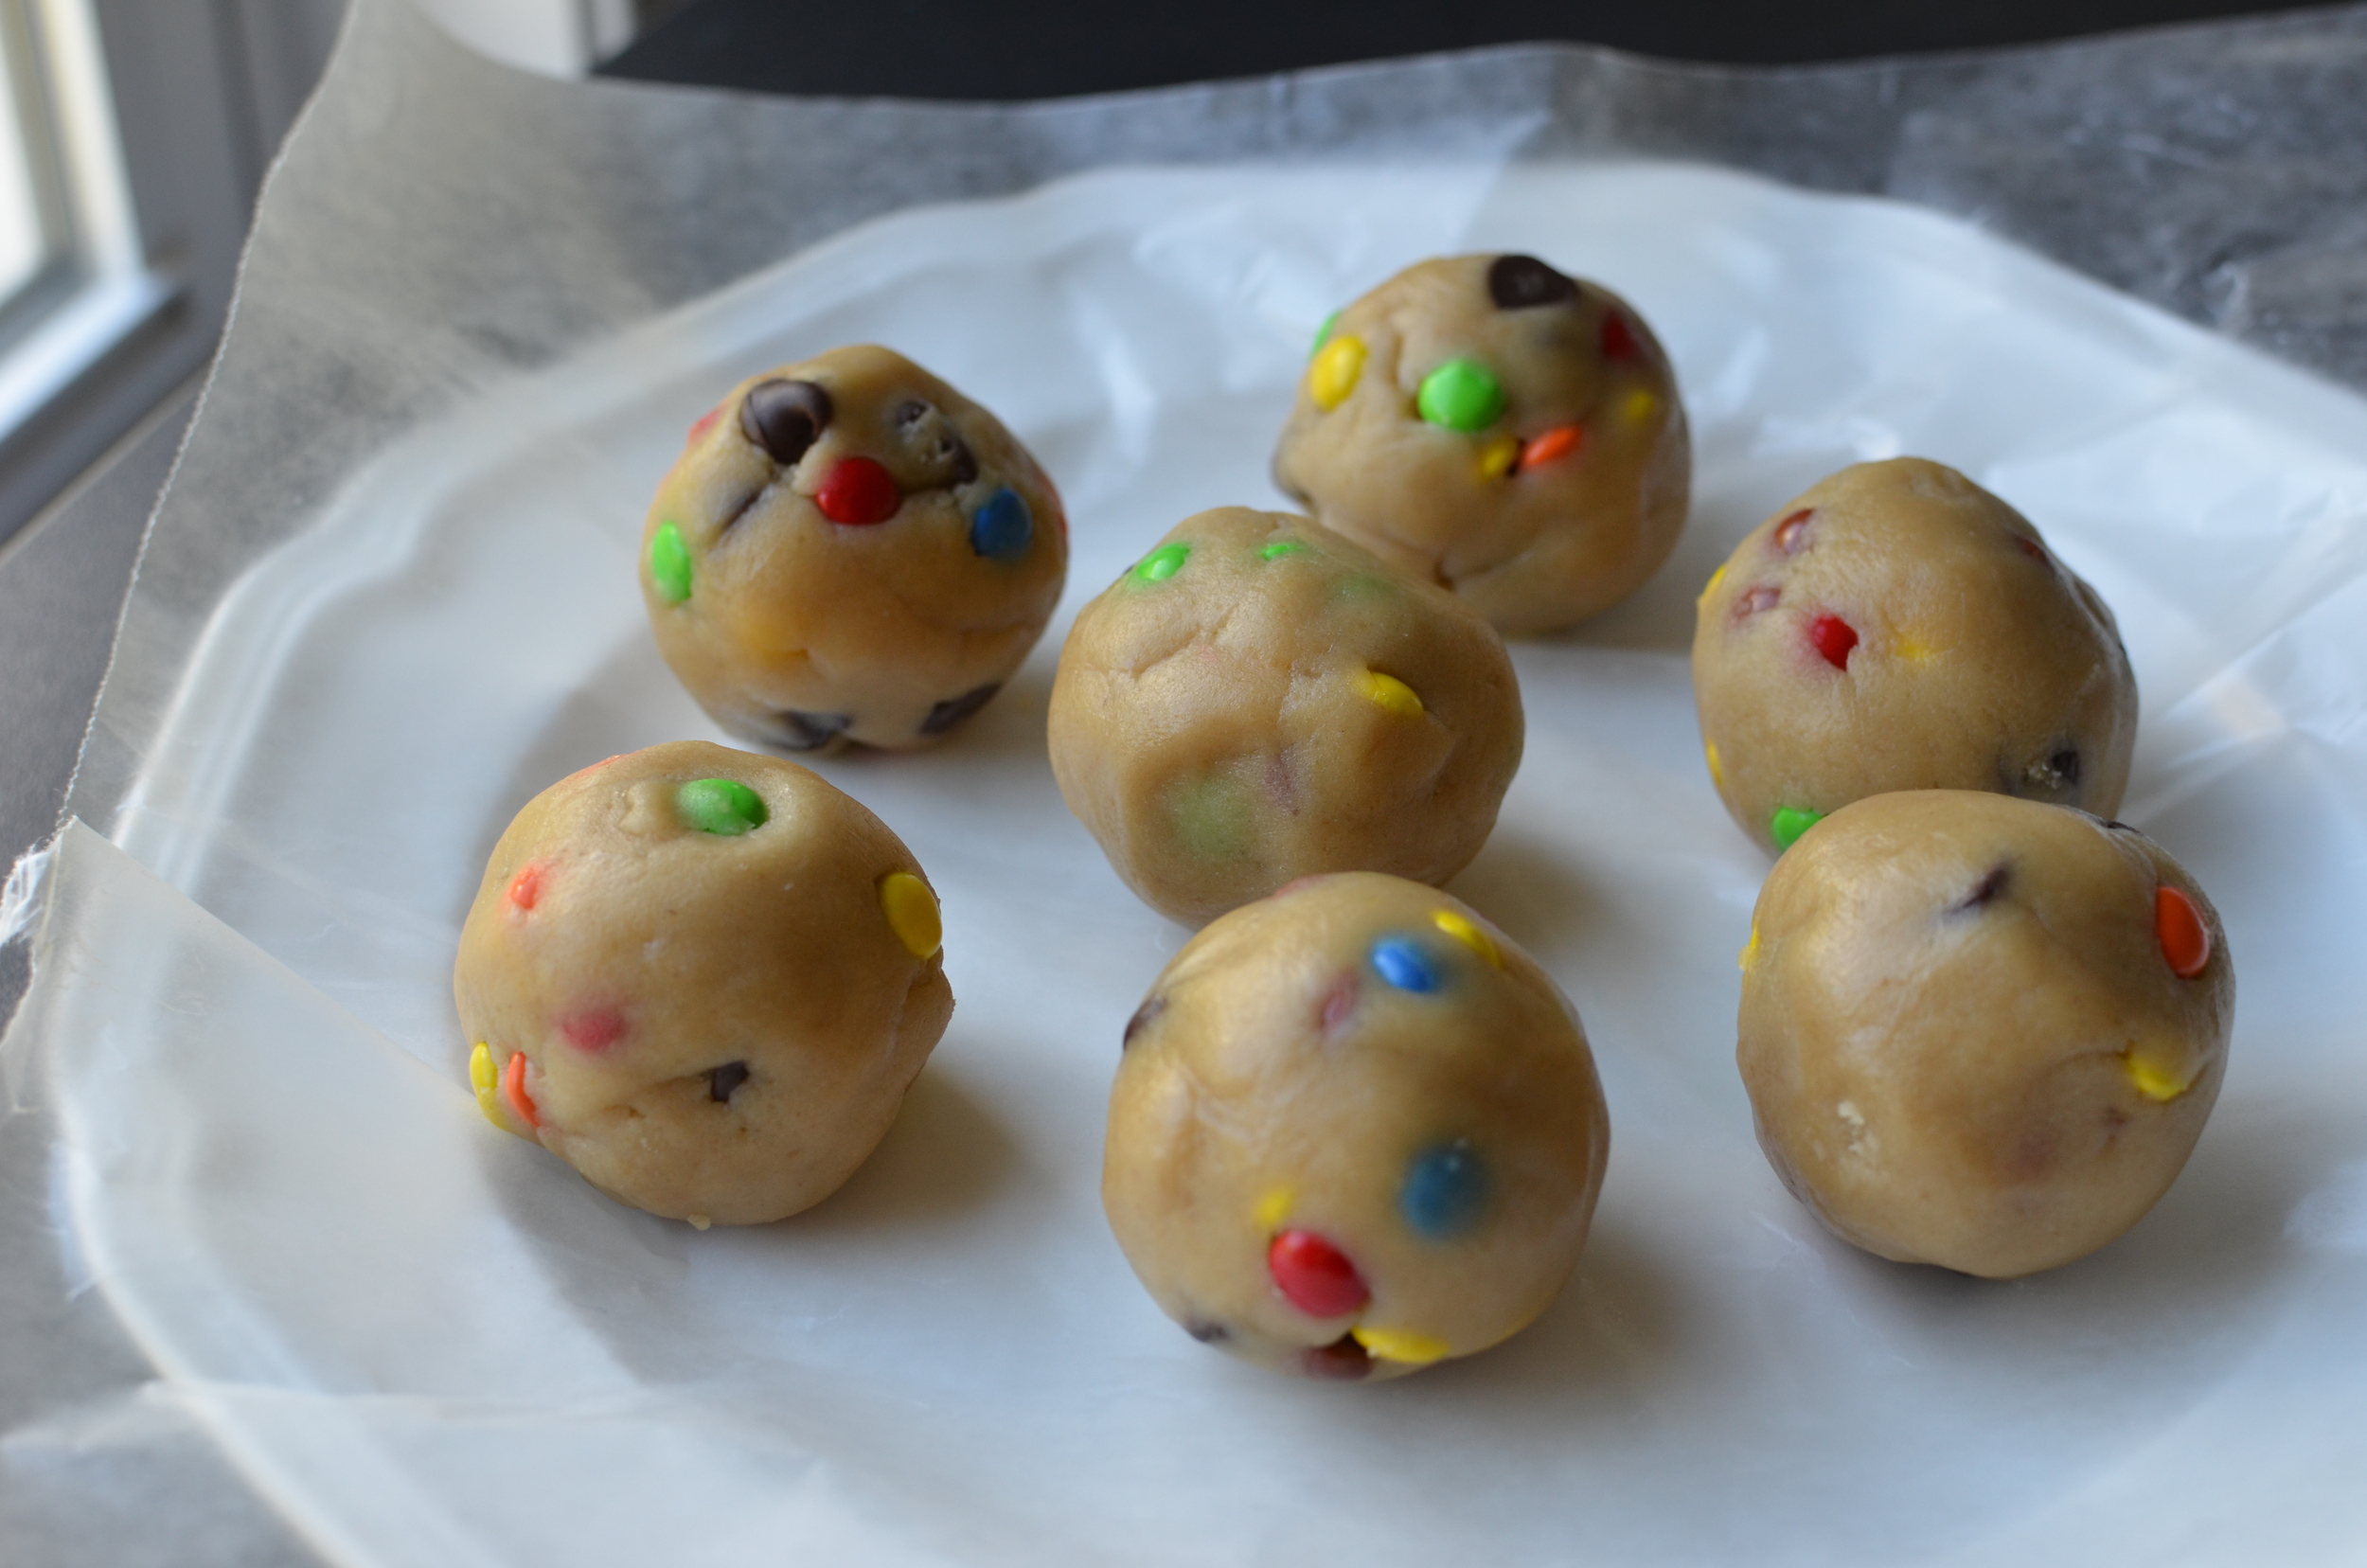 When it's time to bake the cookies, use the heat of your hands to roll the cookie dough into smooth balls.